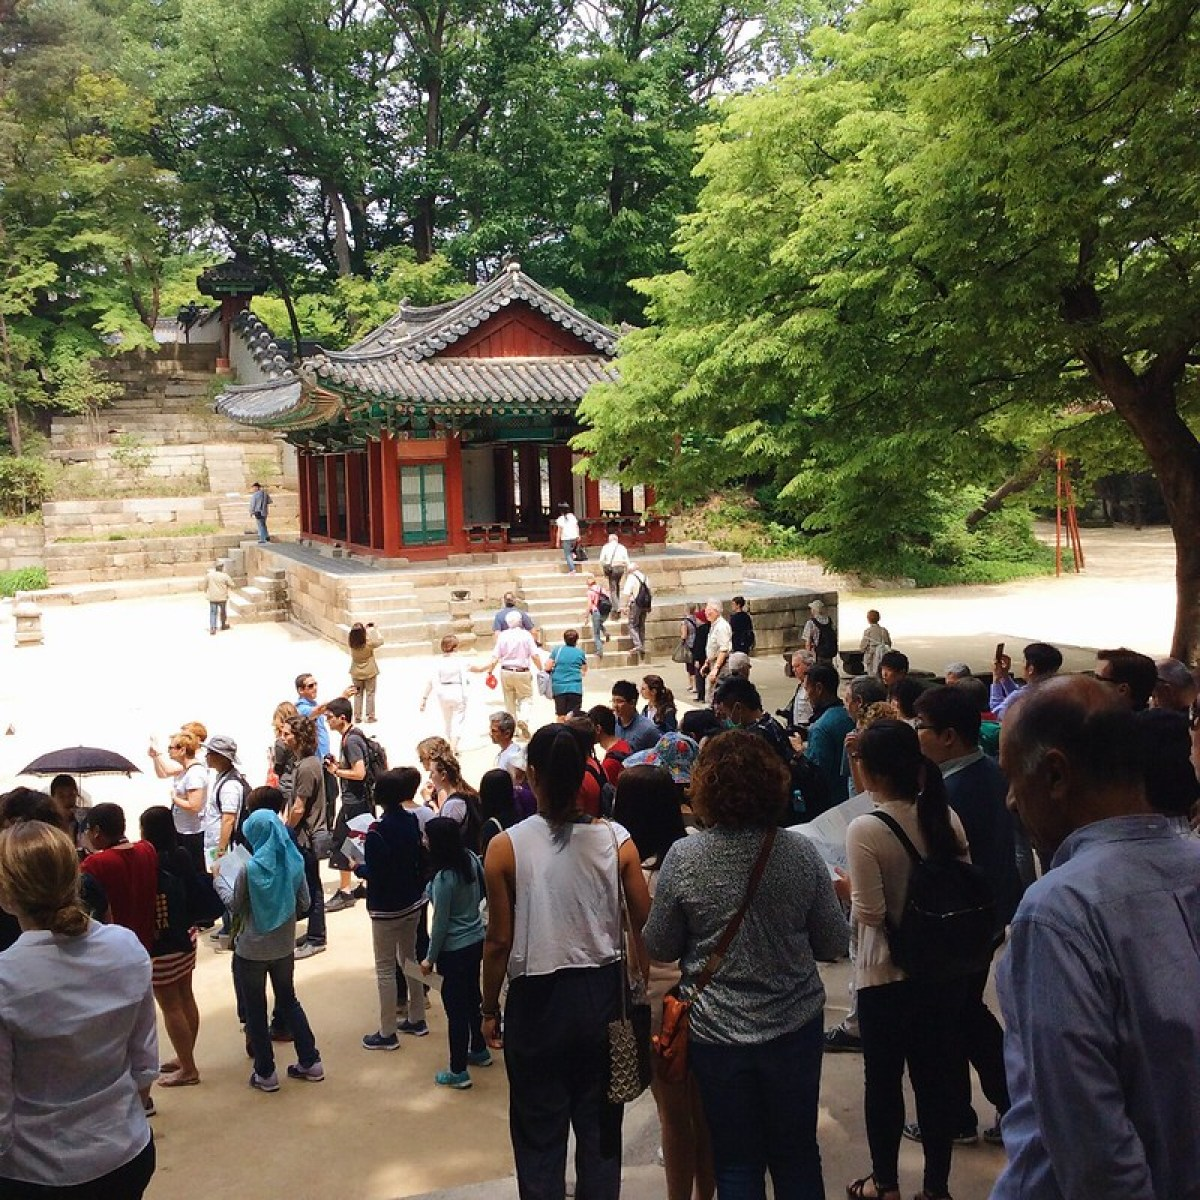 The tourists in the English tour of huwon in secret garden